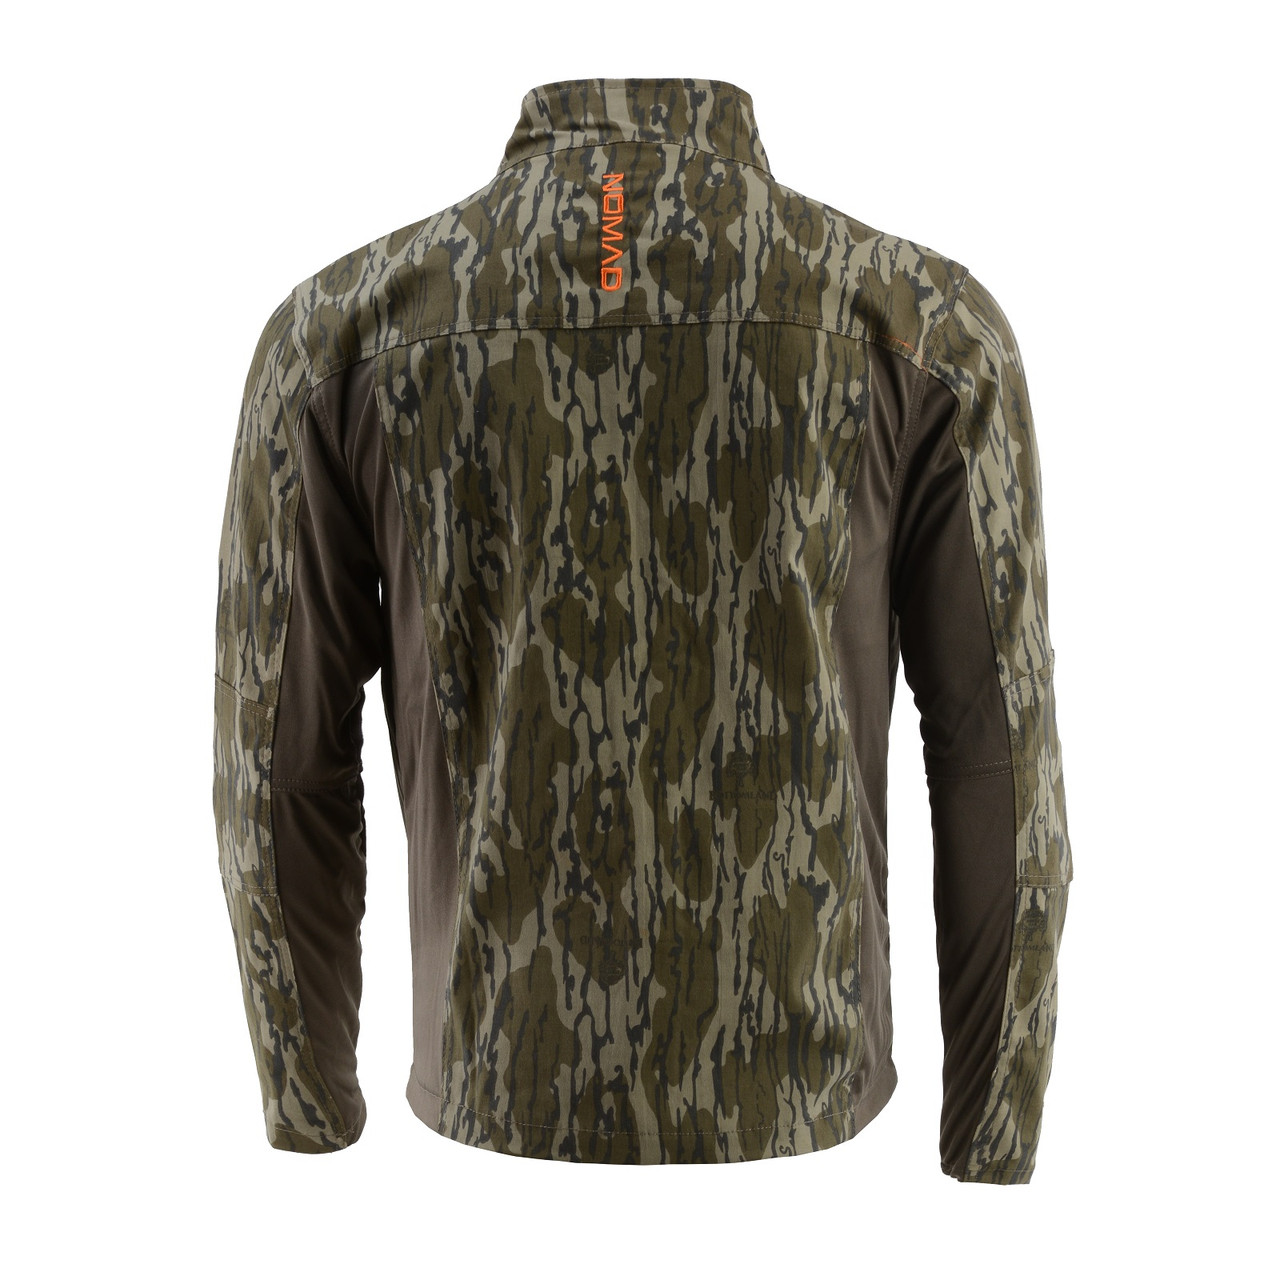 Nomad Men's Bloodtrail Camo Jacket N4000052